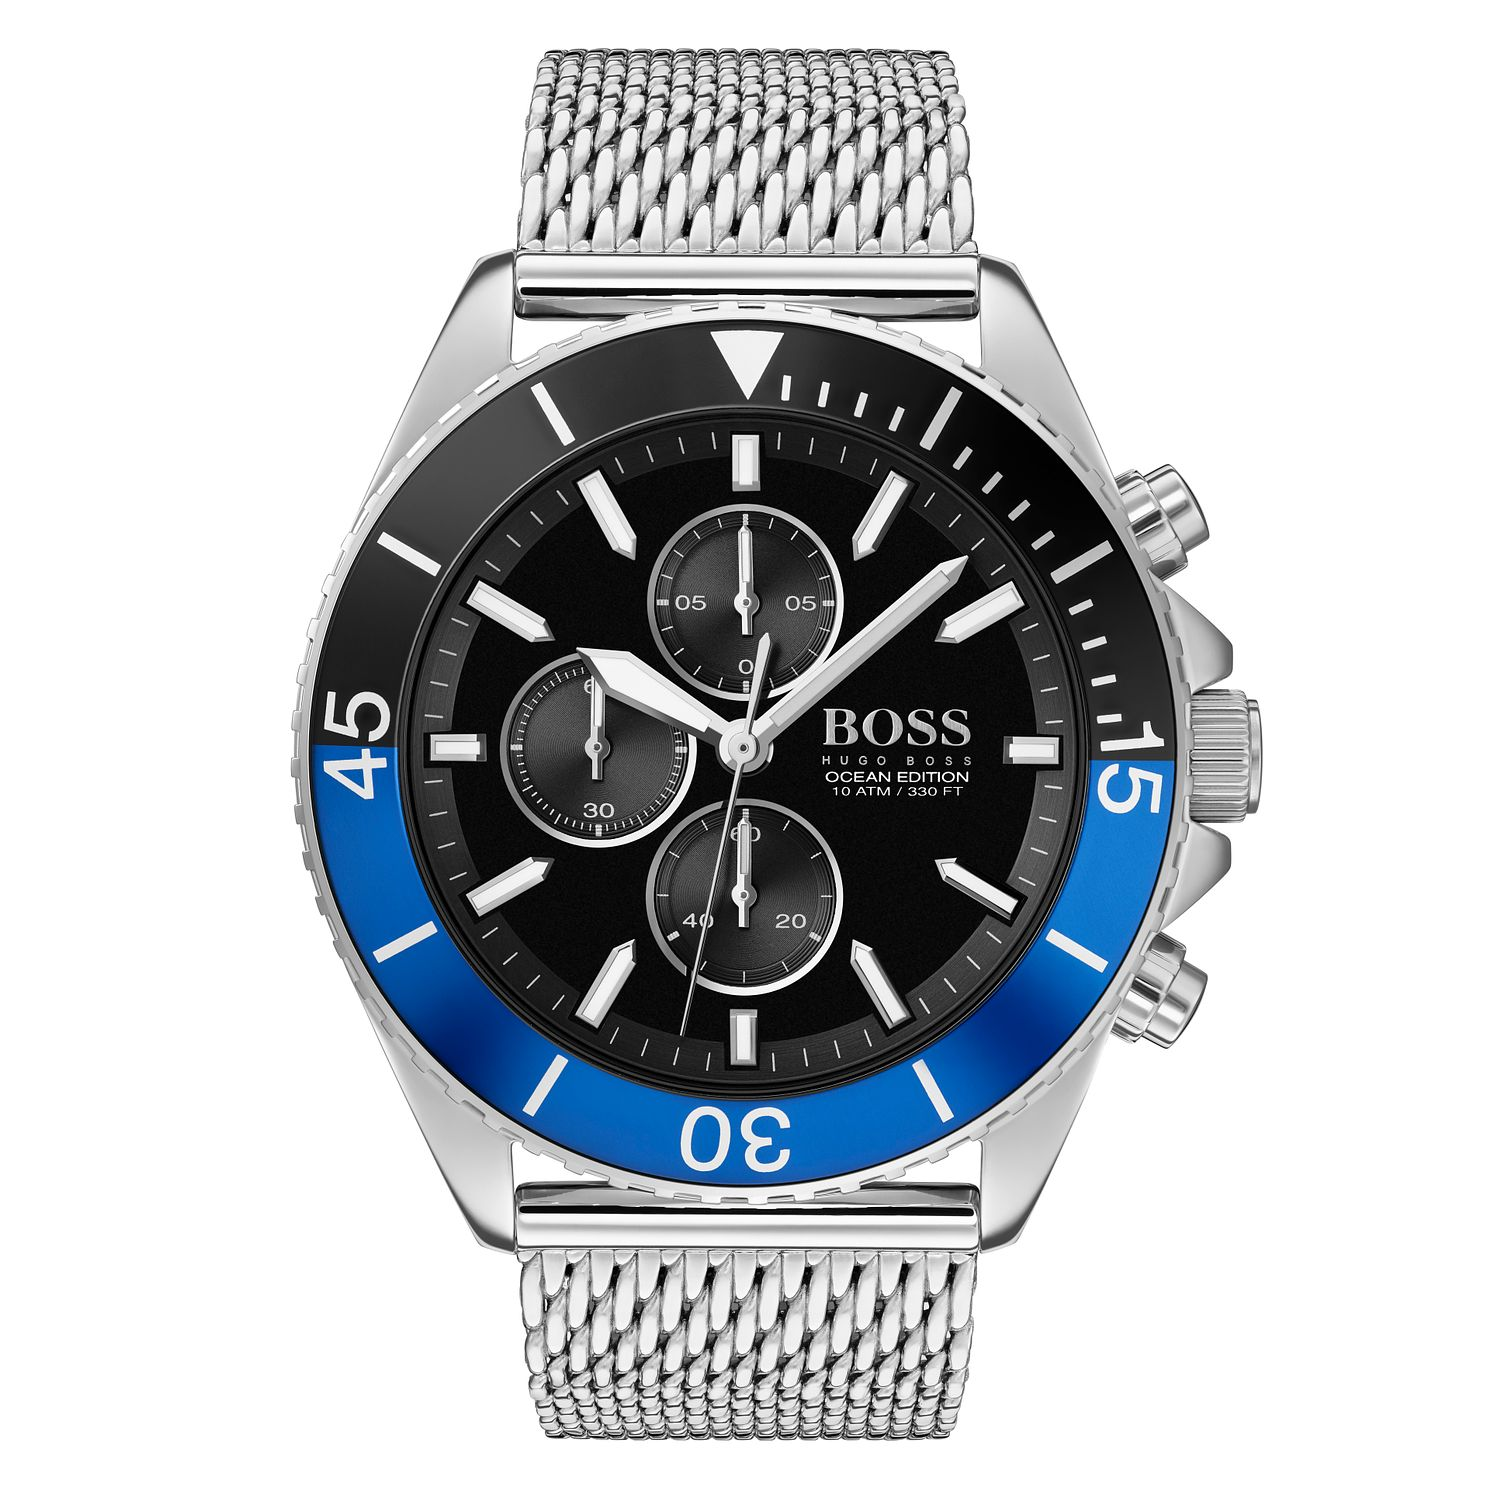 BOSS Ocean Edition Men's Stainless Steel Bracelet Watch - Product number 2776839